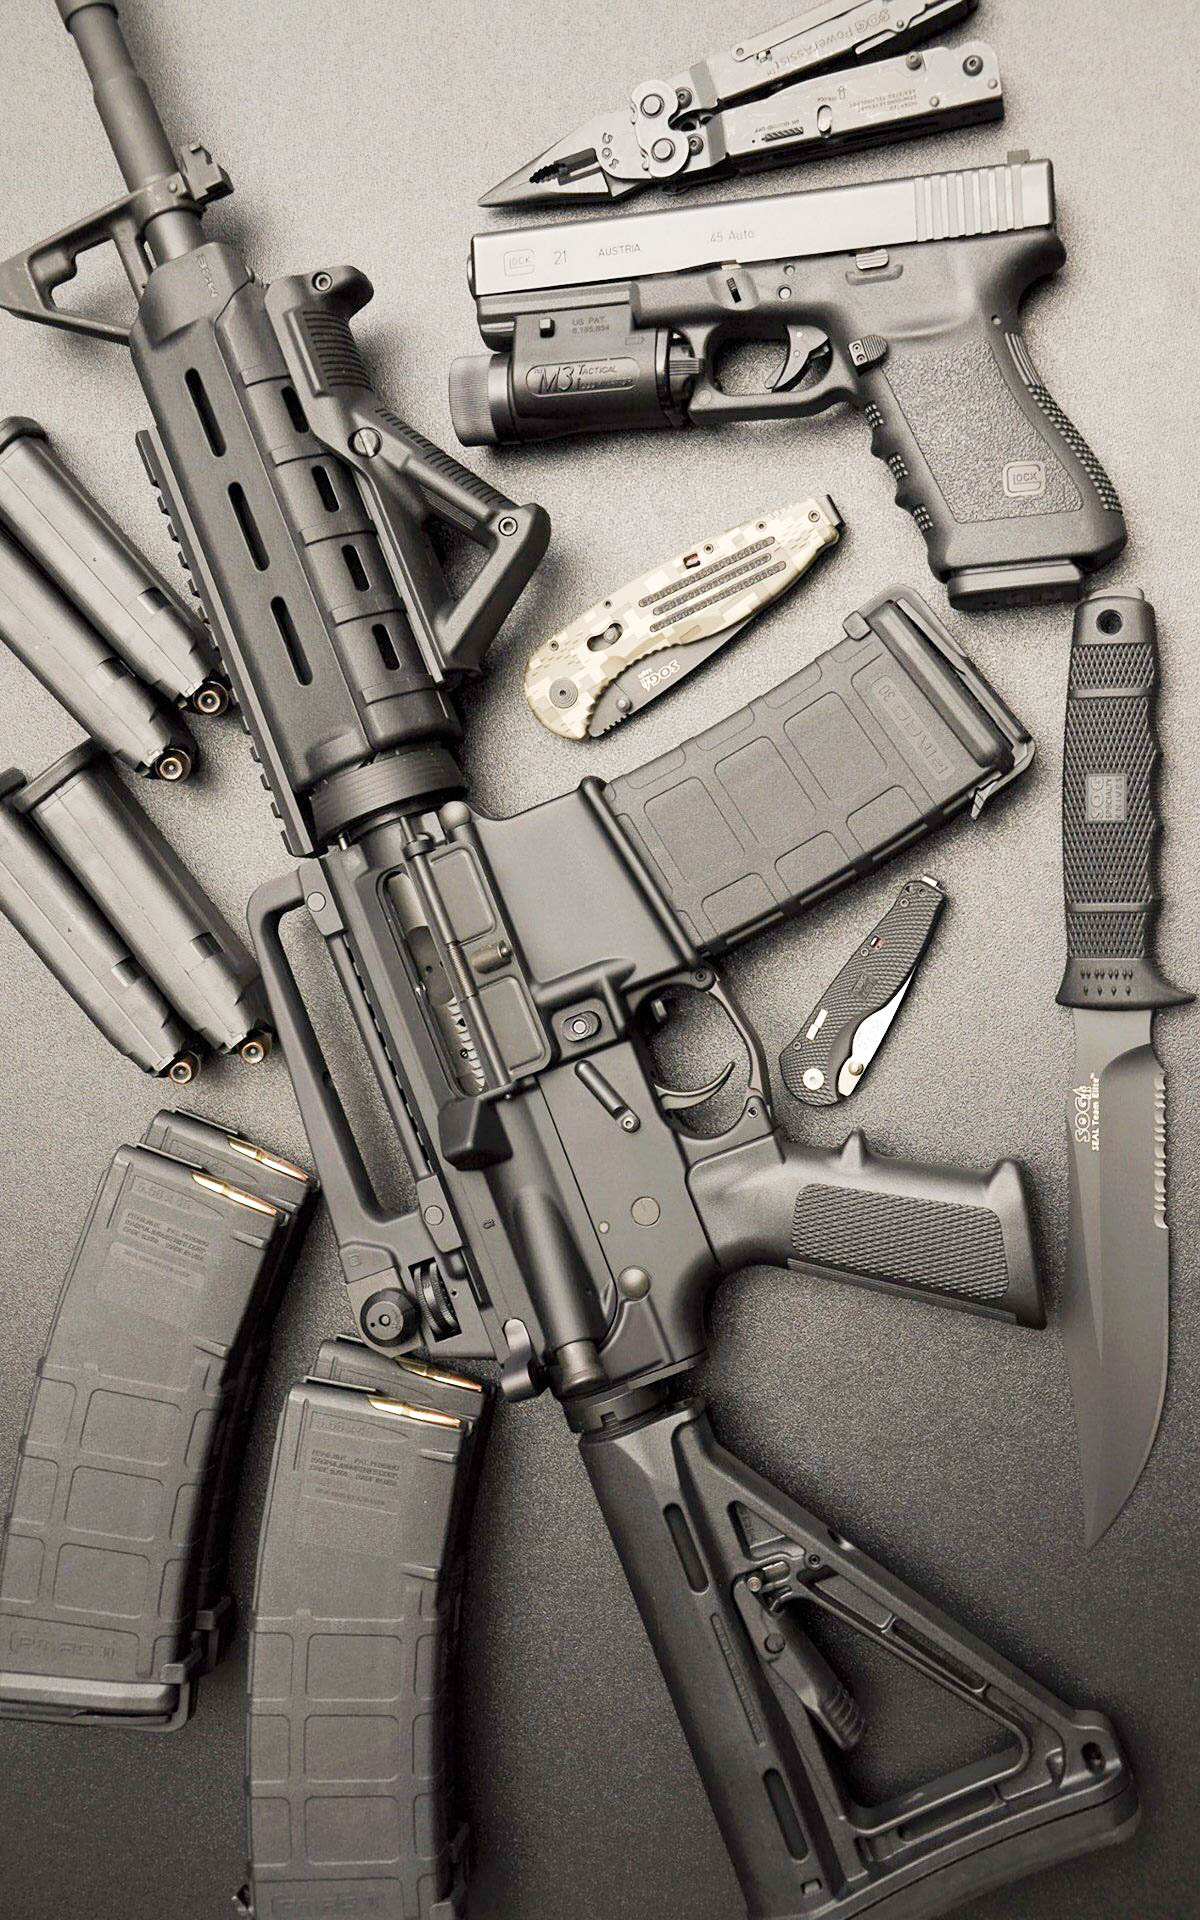 AR 15 Weapon Some Amazing HD Wallpapers Backgrounds High